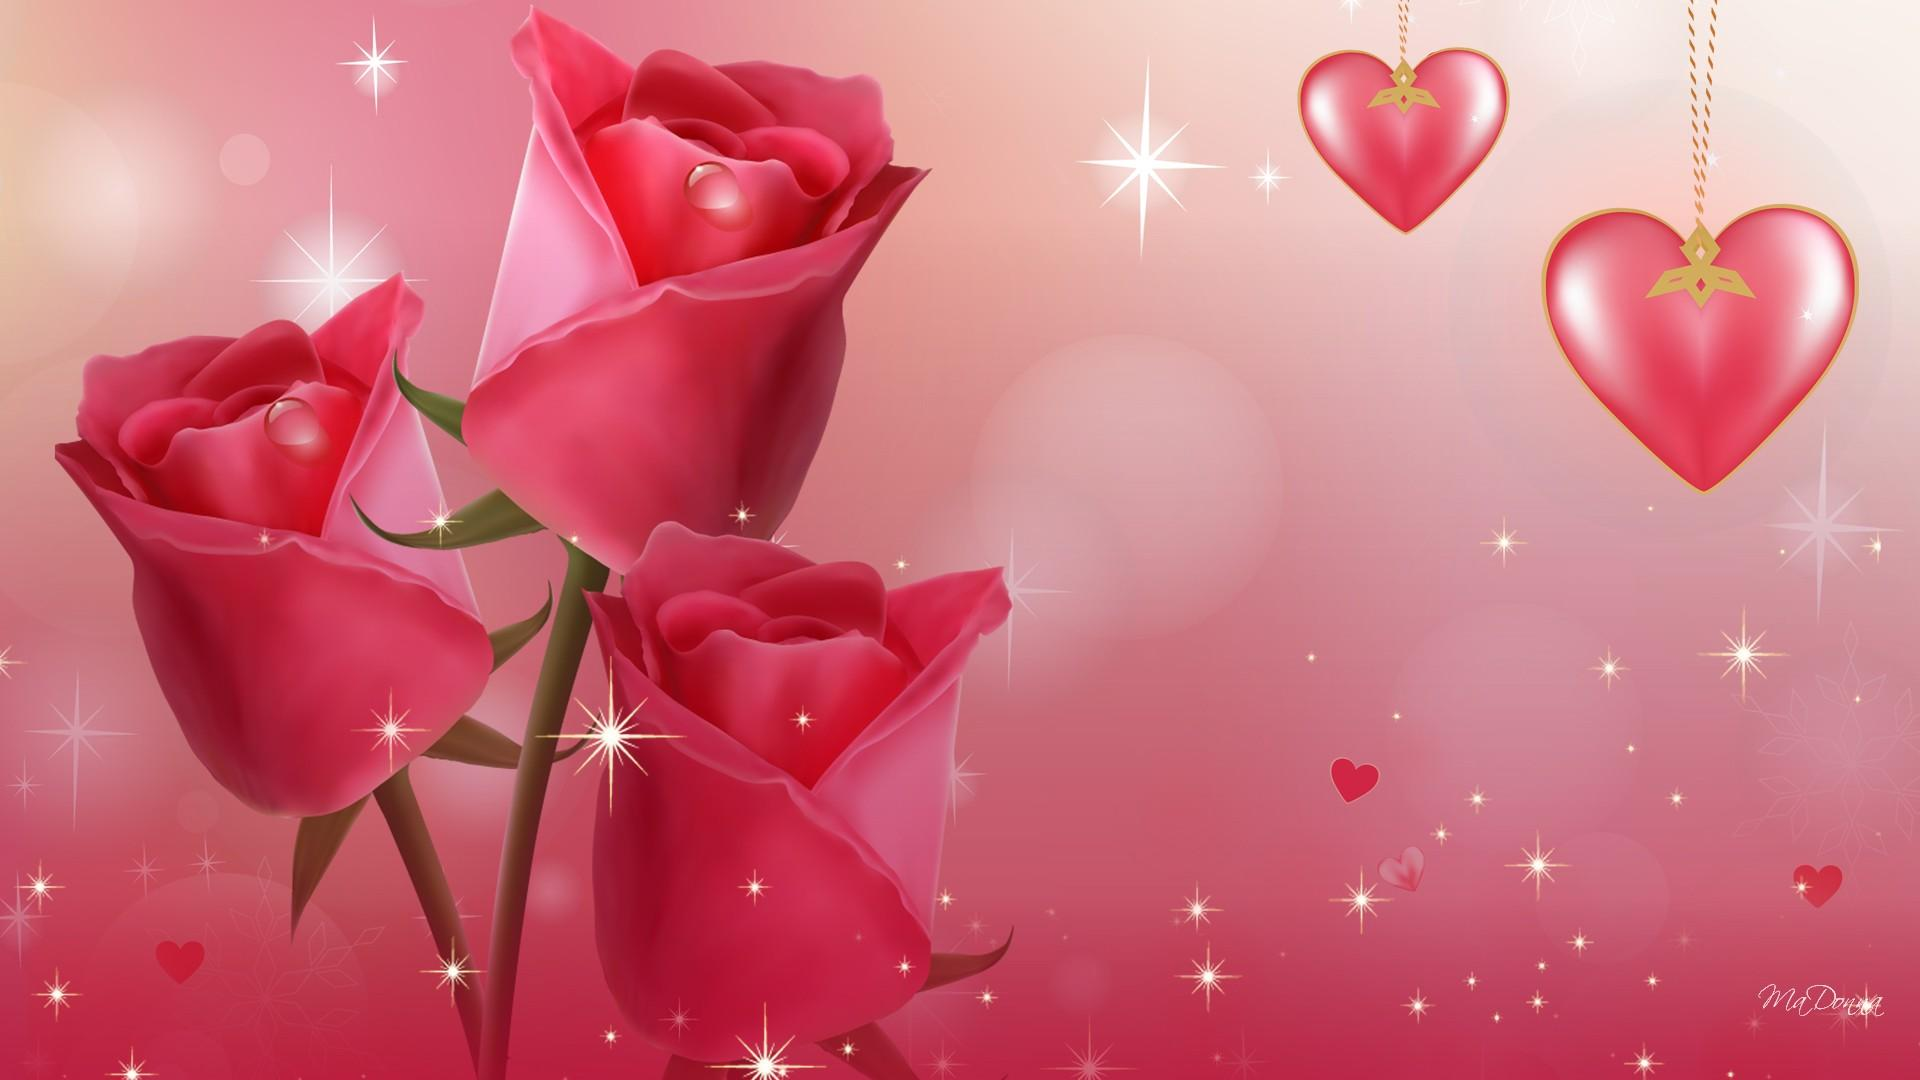 So Beautiful Love Wallpaper : Beautiful Love Wallpaper HD - WallpaperSafari